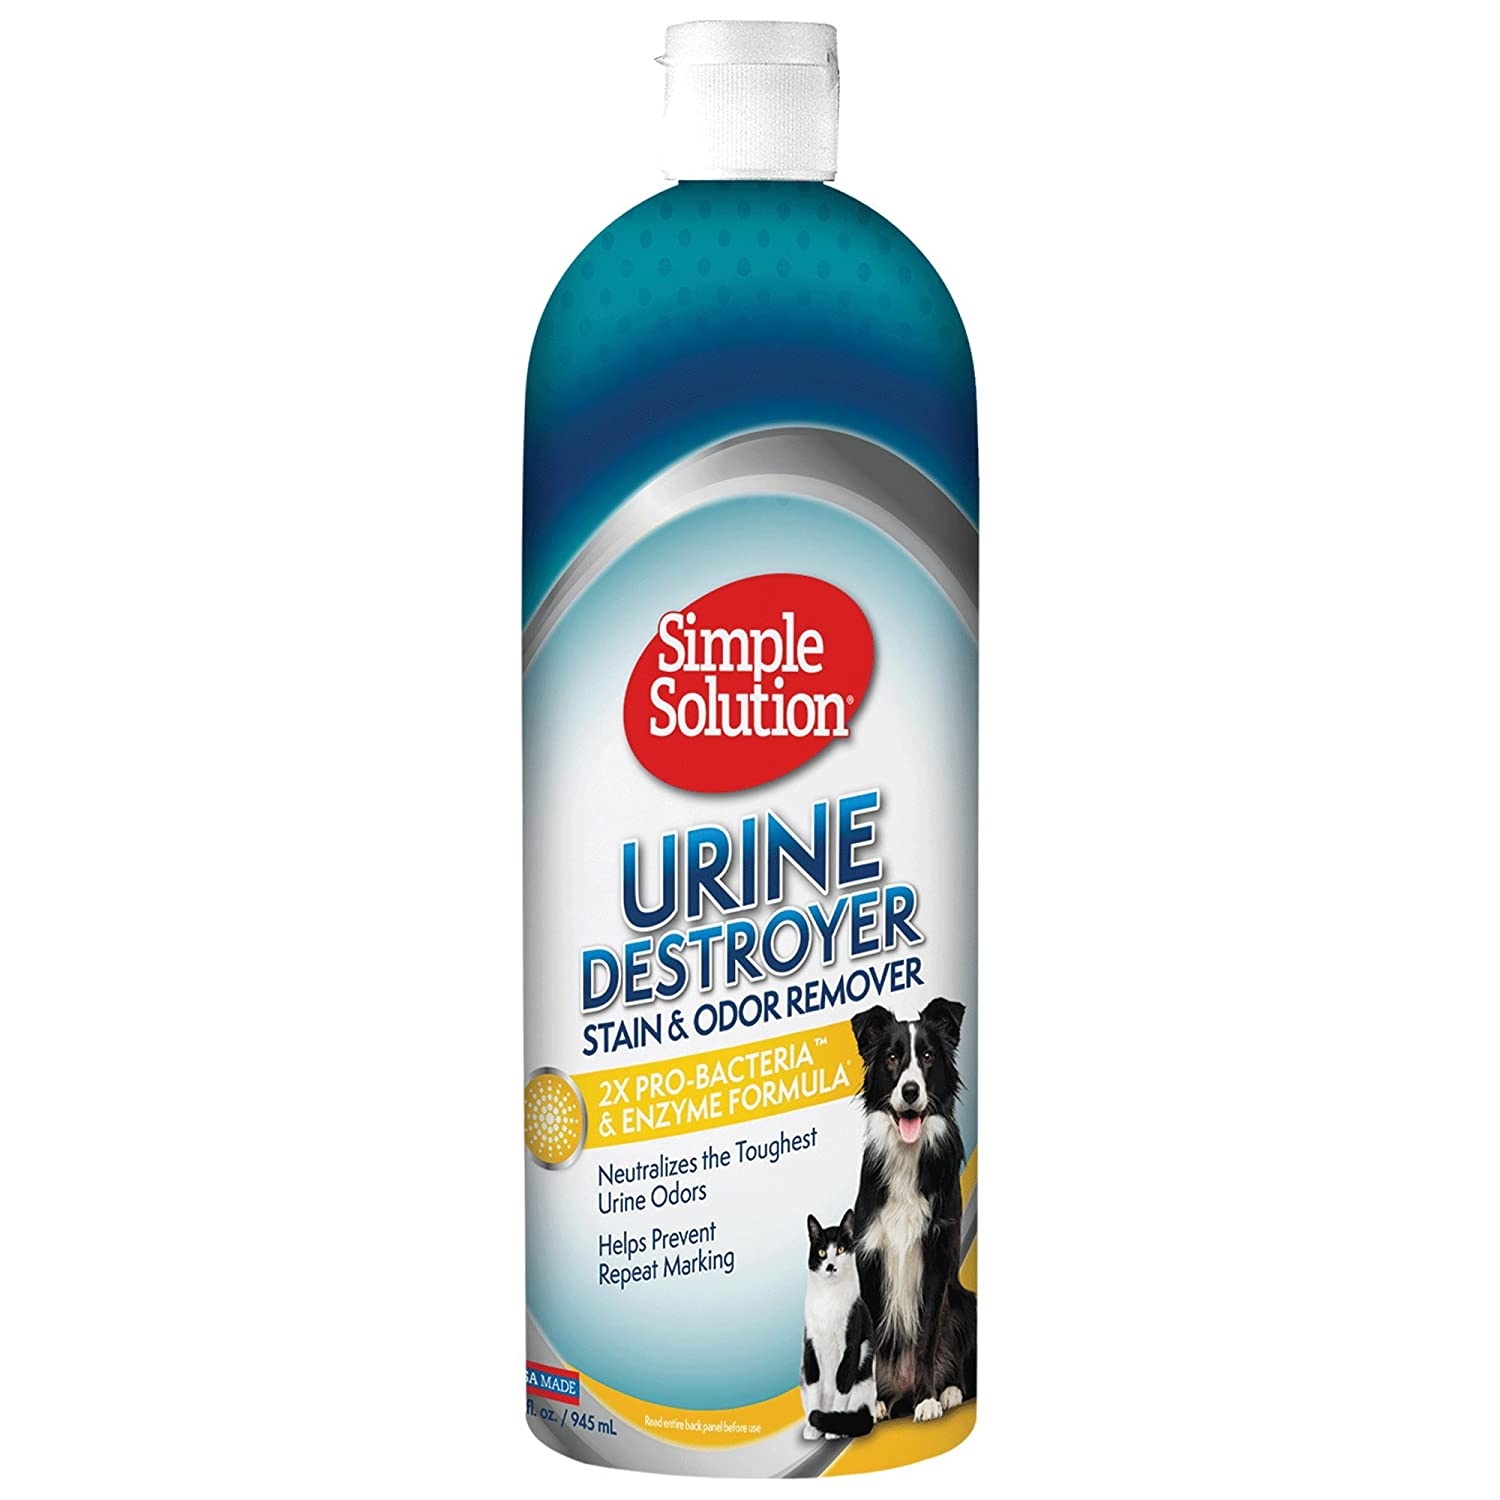 Simple Solution Pet Urine Destroyer | Enzymatic Cleaner with 2X Pro-Bacteria Cleaning Power | Targets Urine Stains and Odors